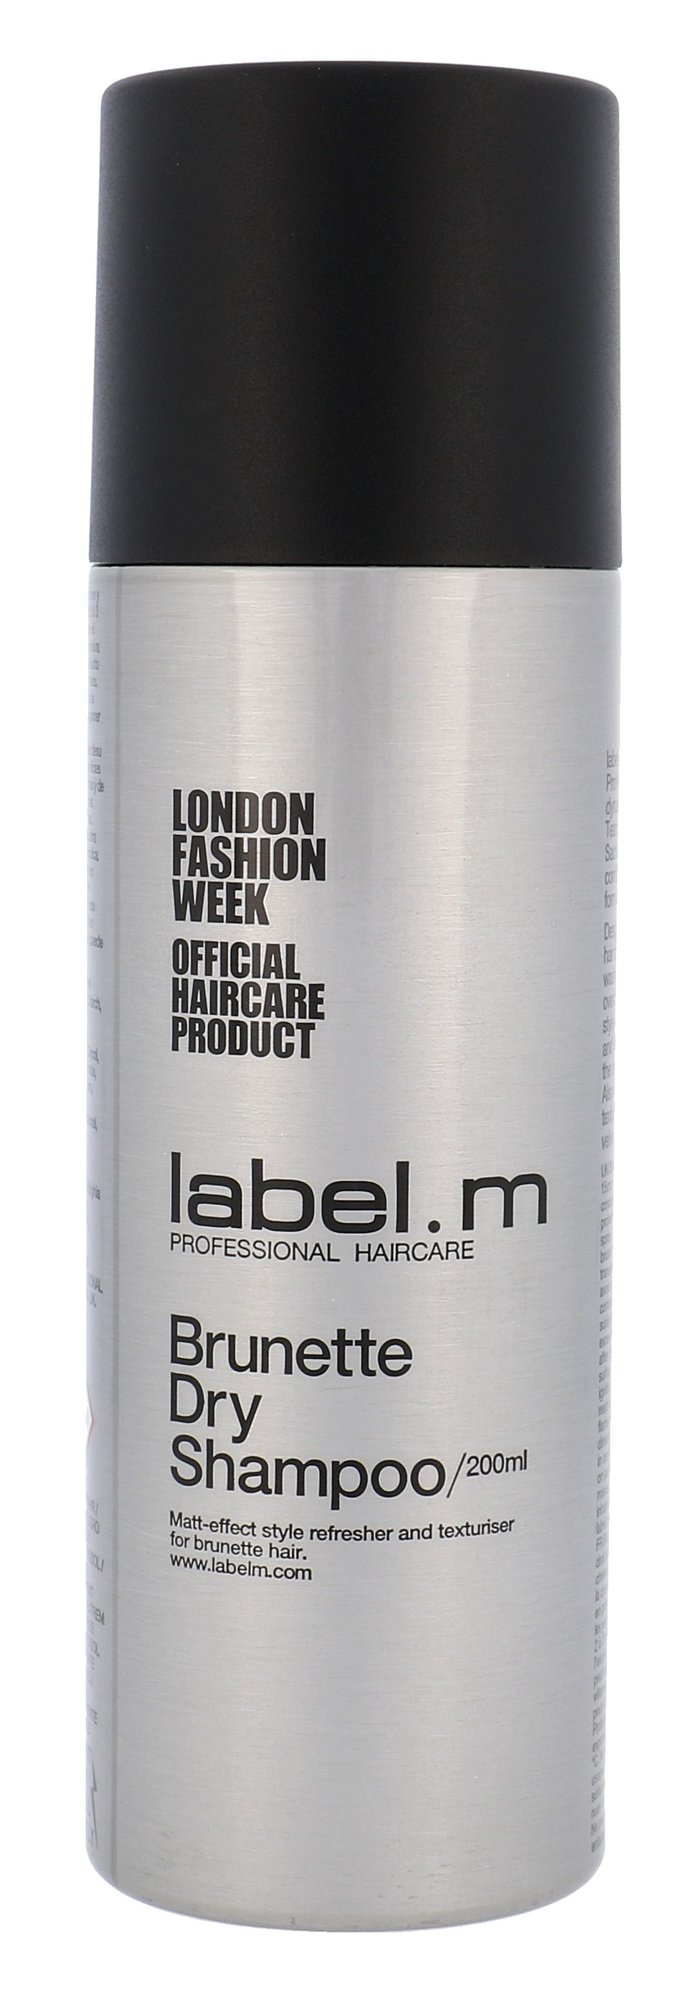 Label m Brunette Dry Shampoo Cosmetic 200ml